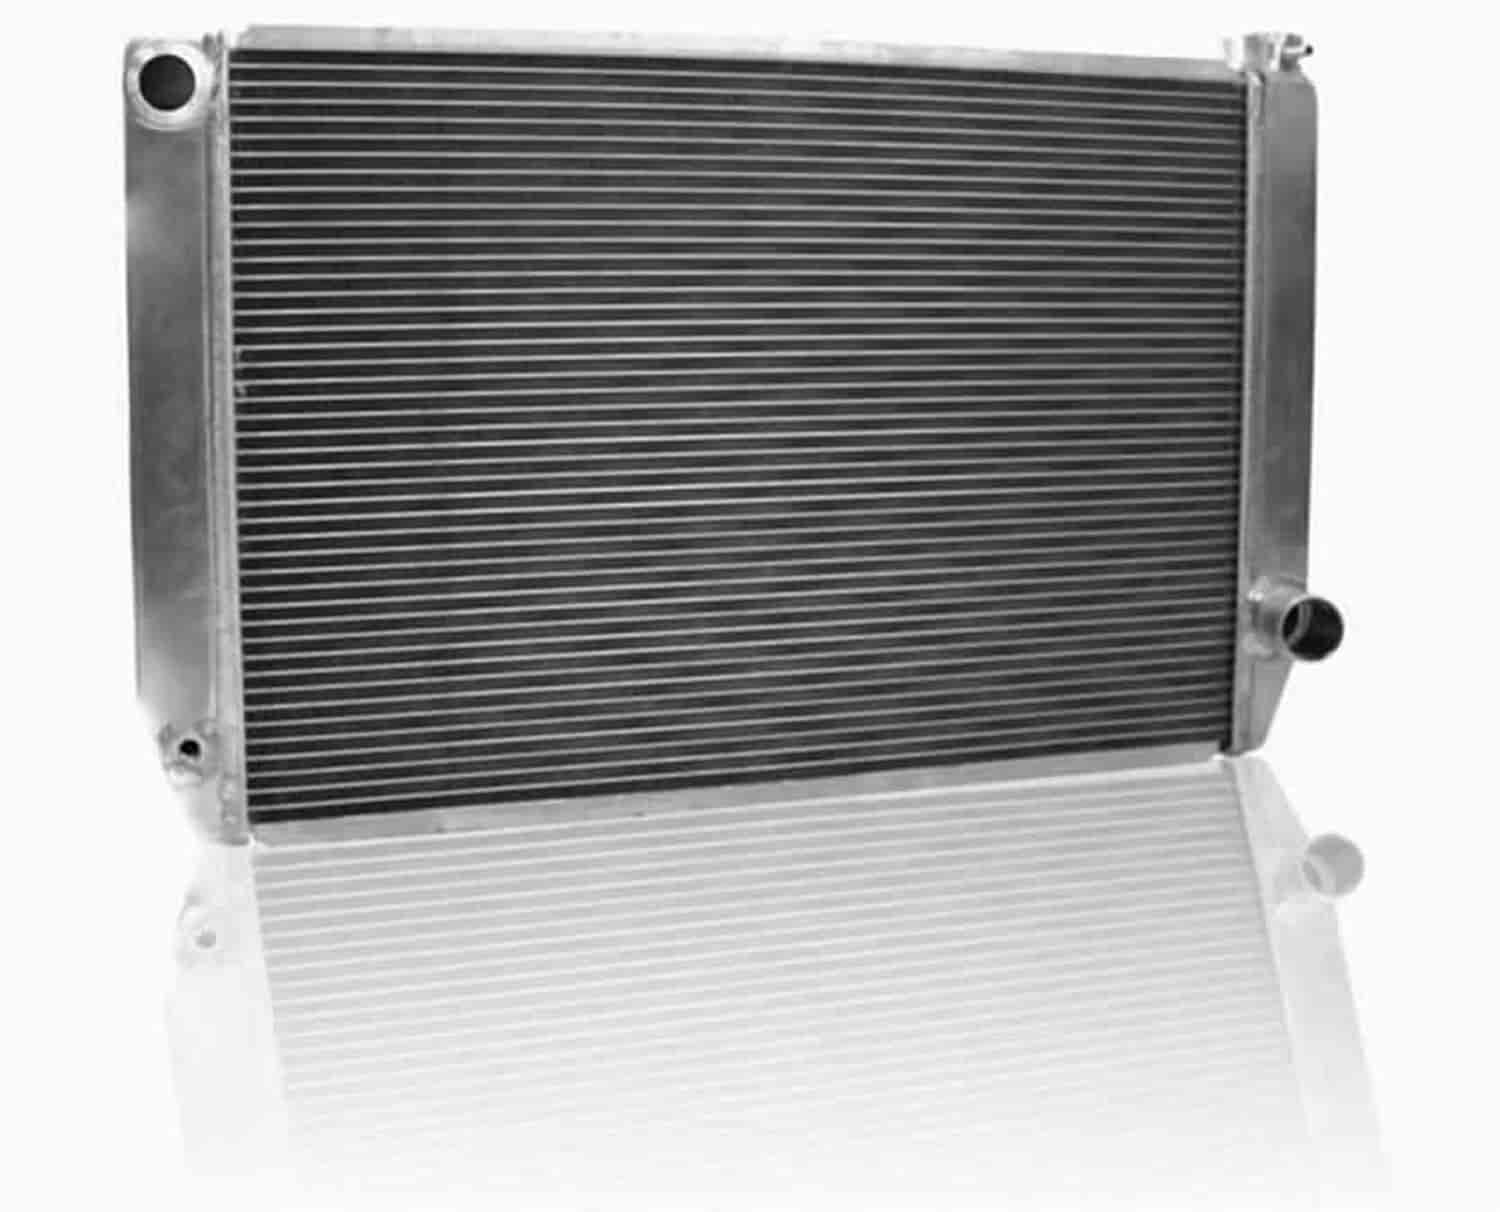 Griffin Radiators 1-55272-F